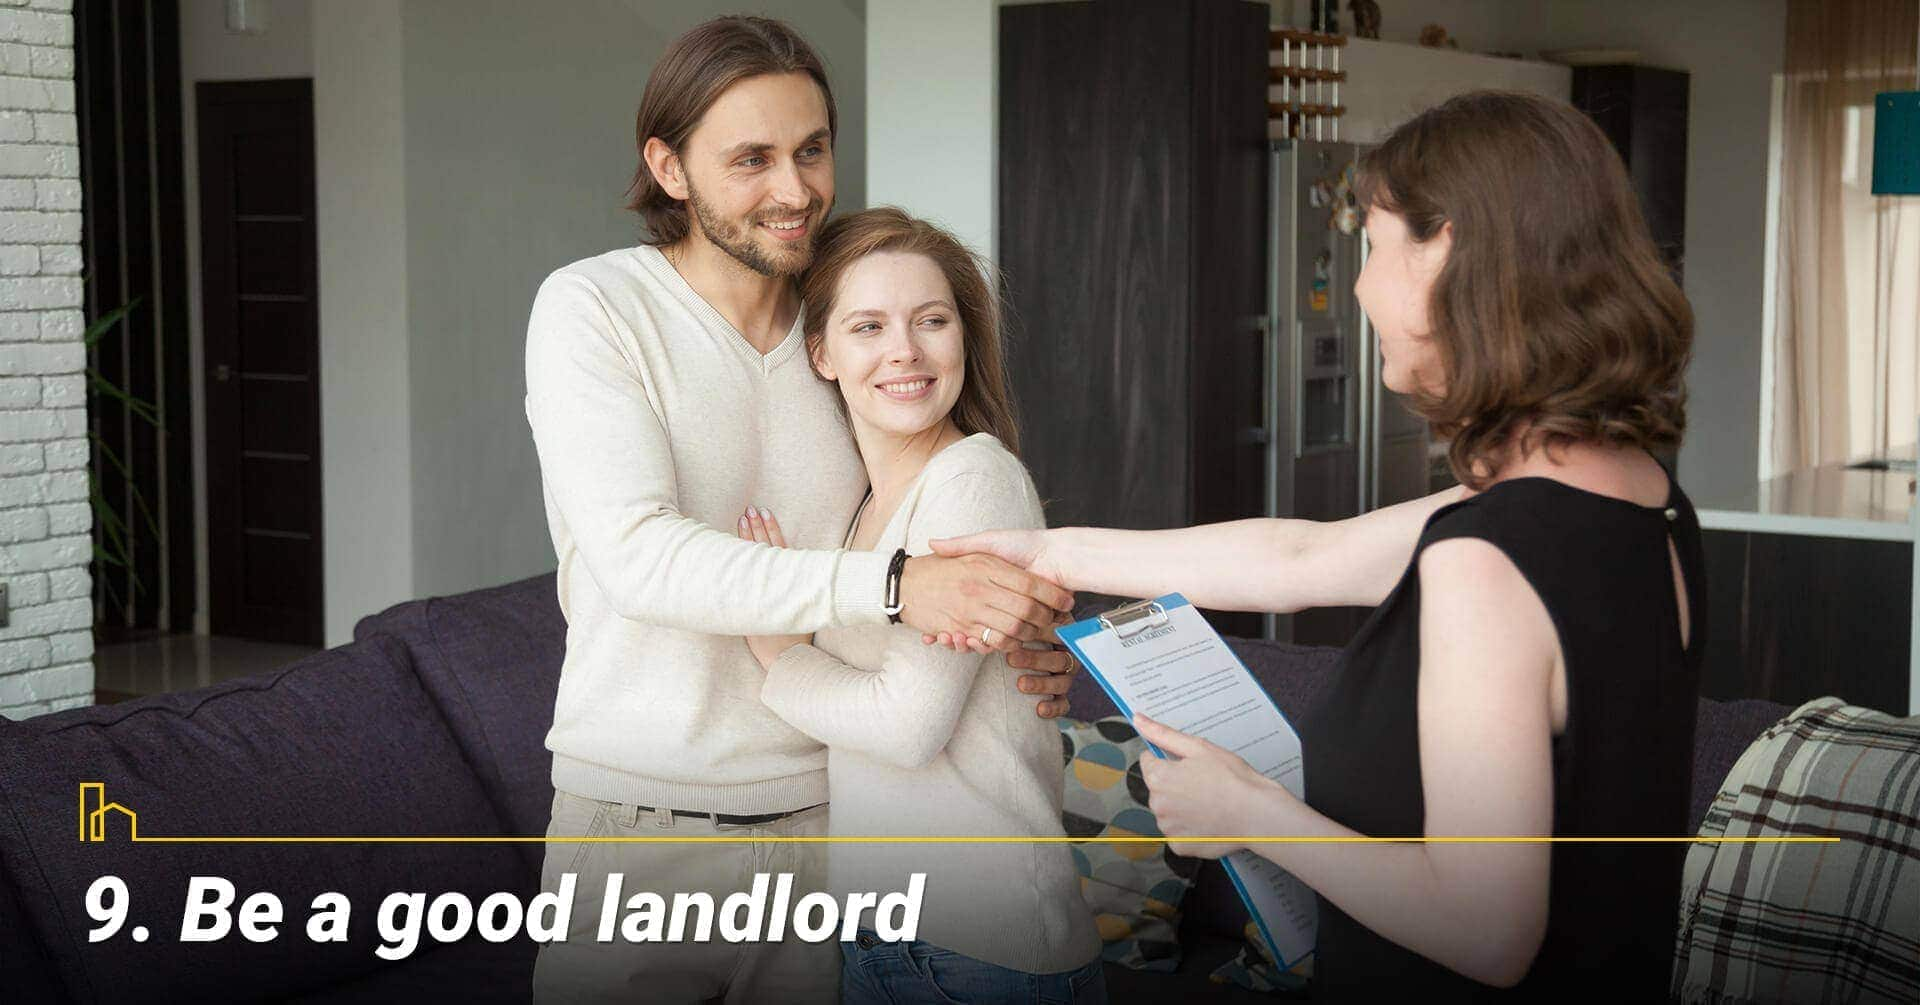 Be a good landlord